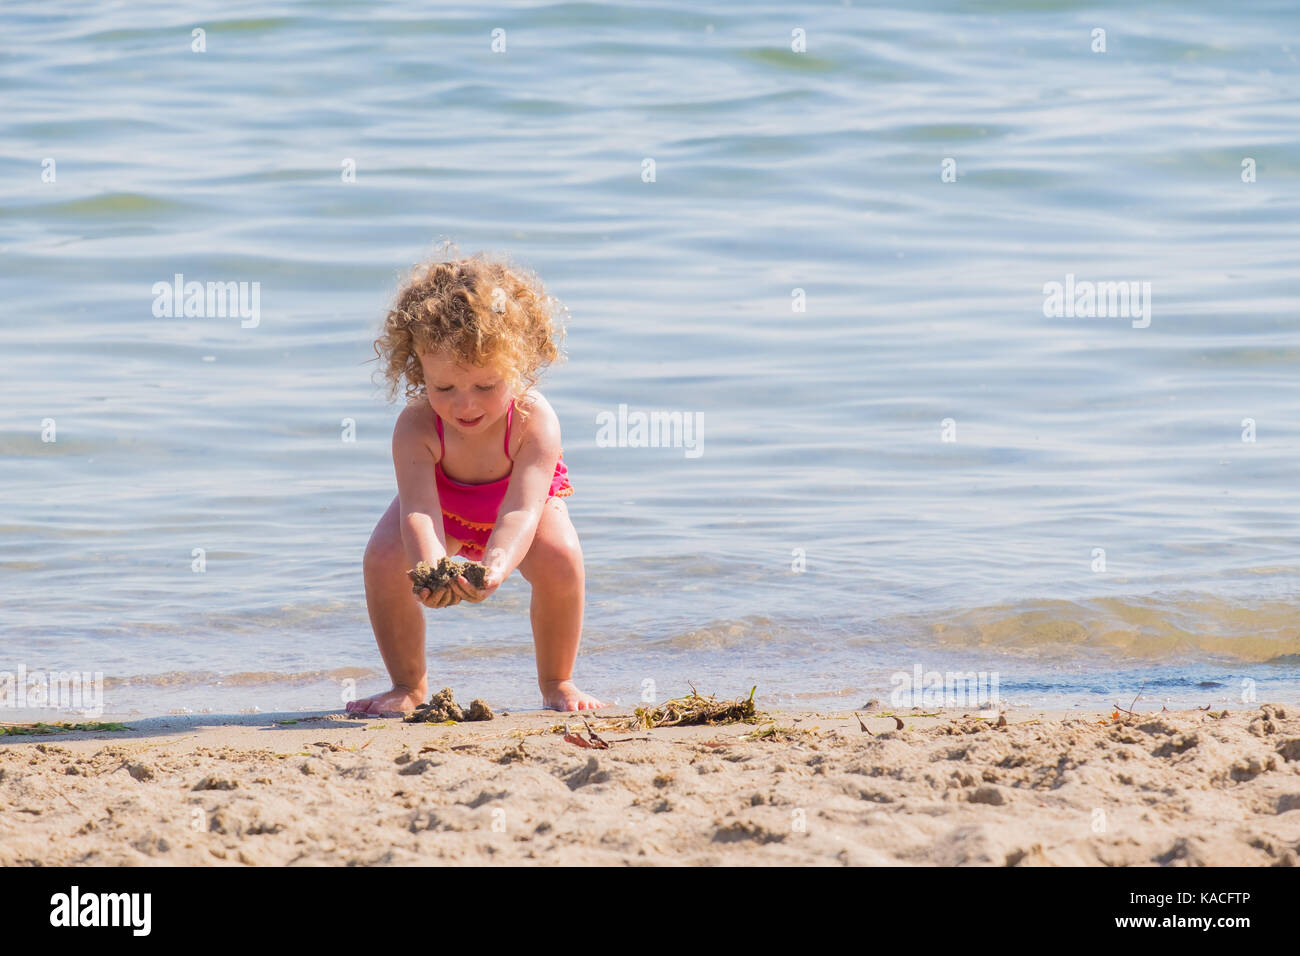 Small female child plays at and enjoys the coolwater on a rare hot day in Orillia Ontario Canada. - Stock Image